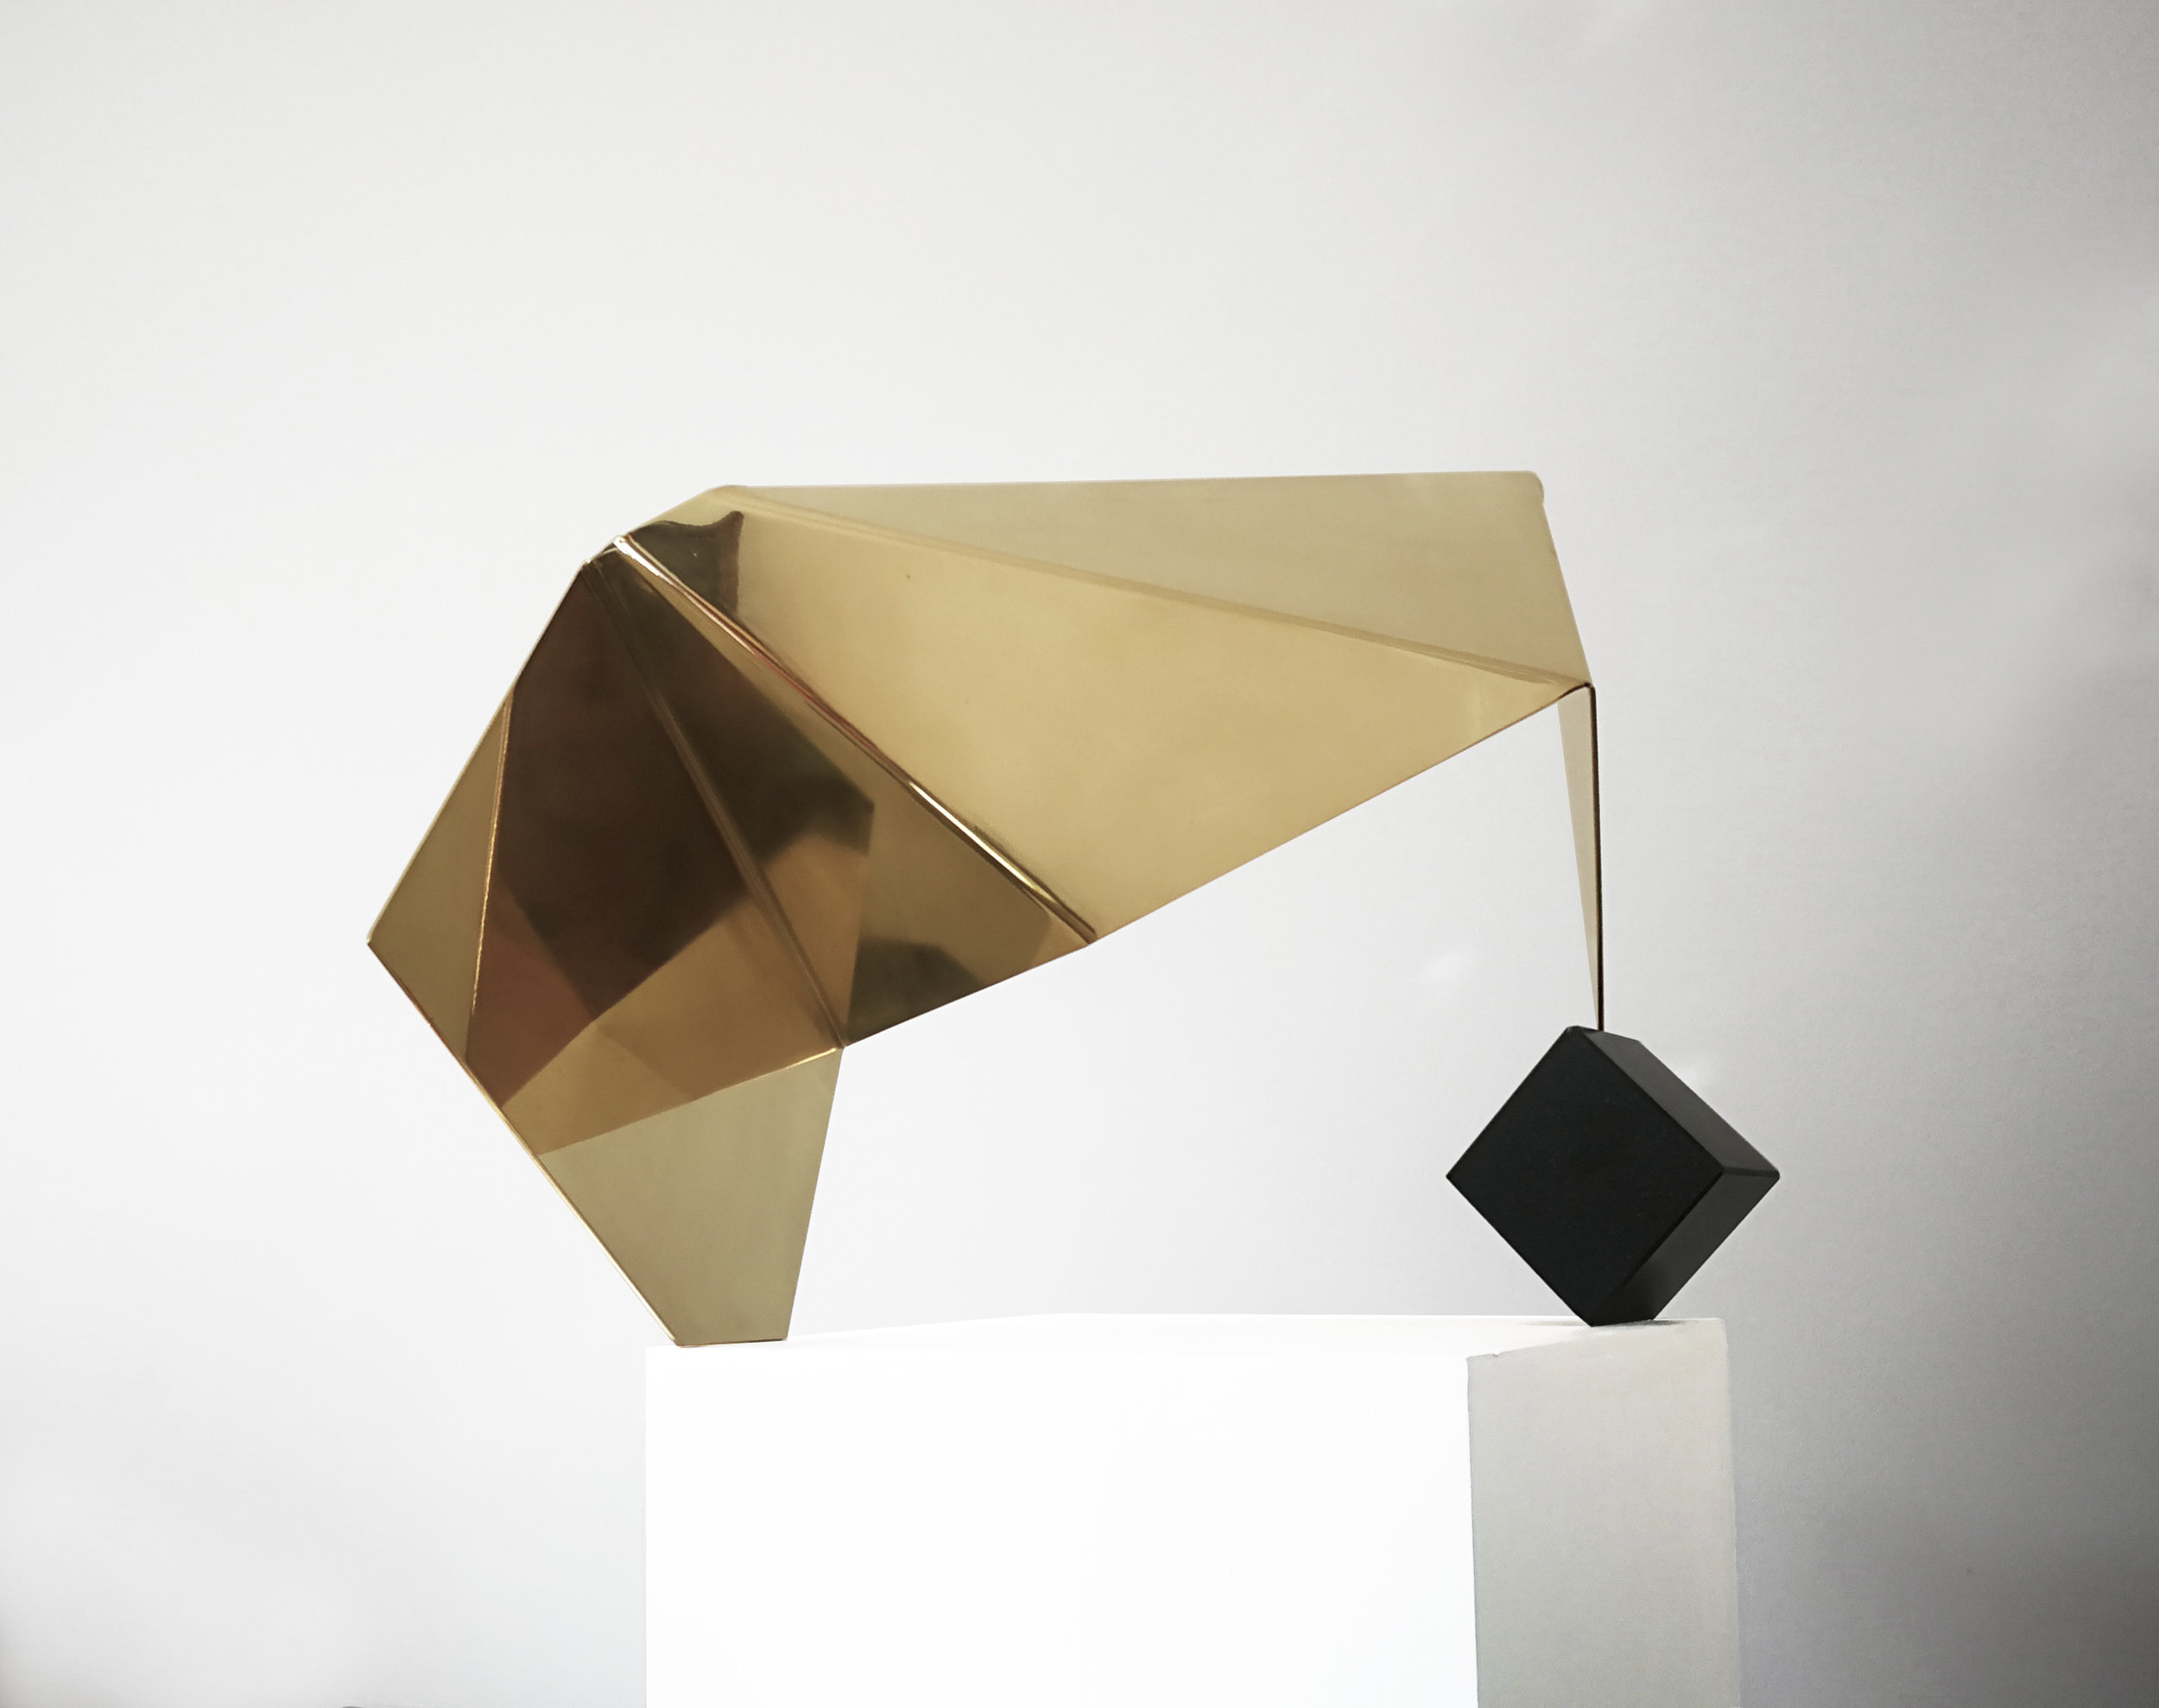 Couterpoint by Alejandro Urrutia, 2019